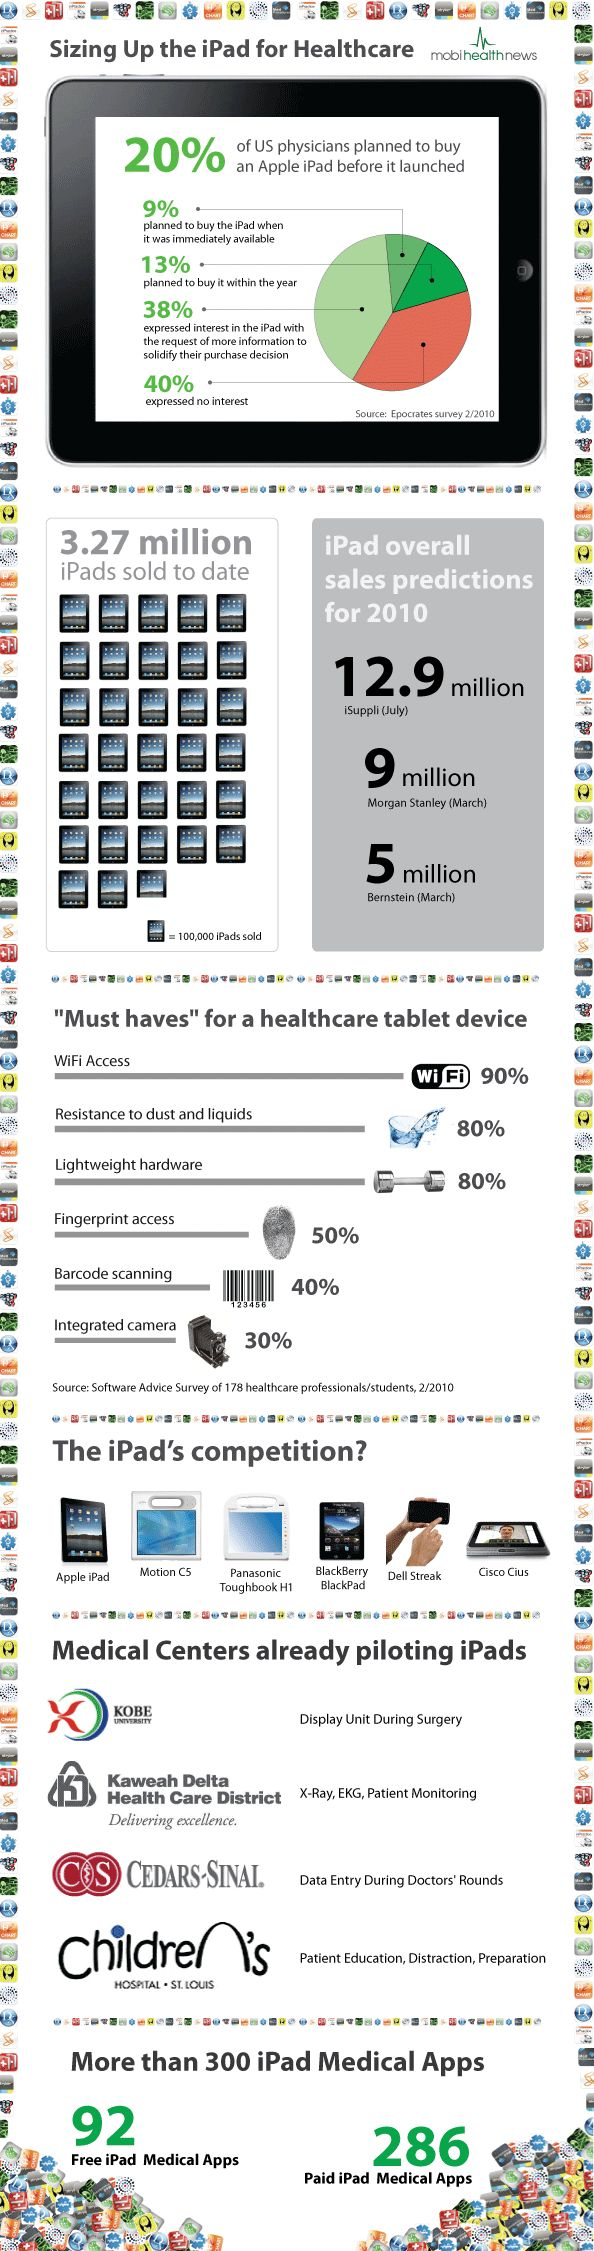 Sizing Up the iPad for Healthcare